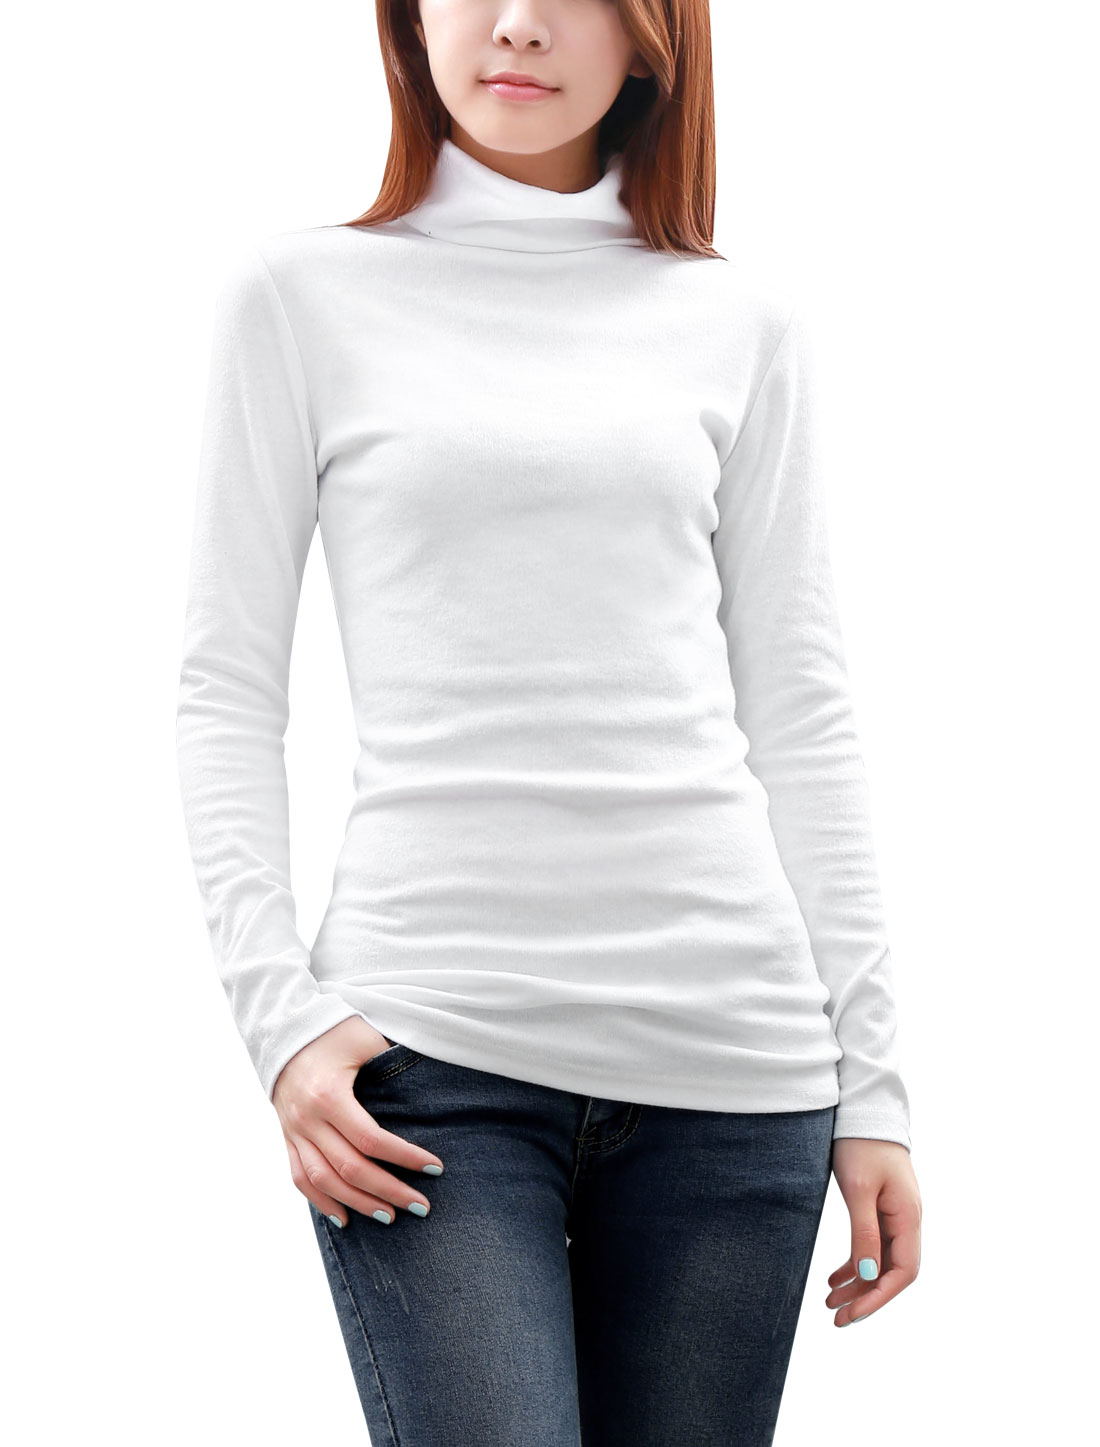 Women Slim Fit Straight Cutting Long Sleeve Soft Rib Knit Top White L